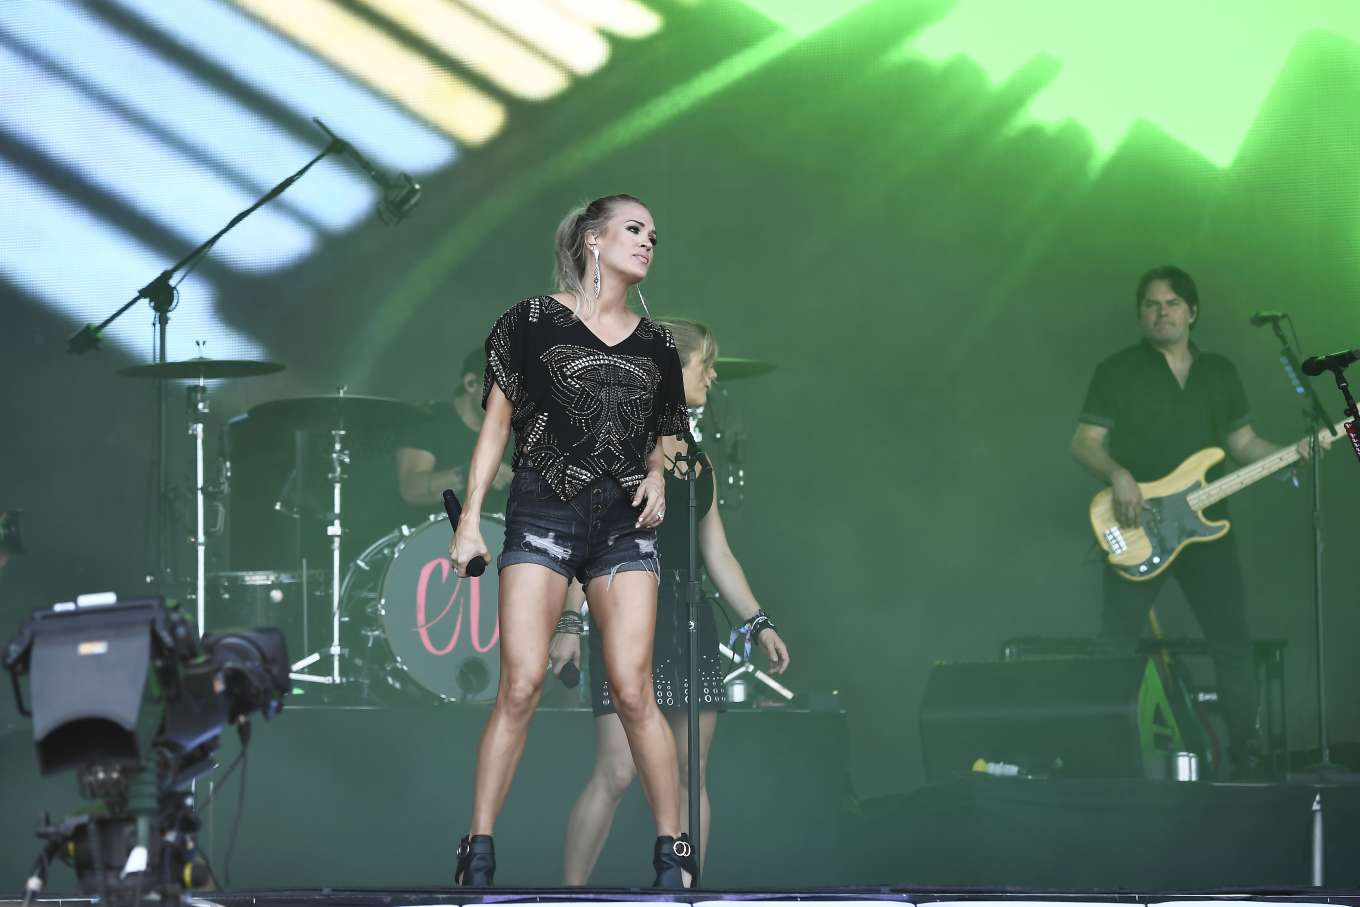 Carrie Underwood 2019 : Carrie Underwood – Performing on the Pyramid Stage at Glastonbury Festival-08